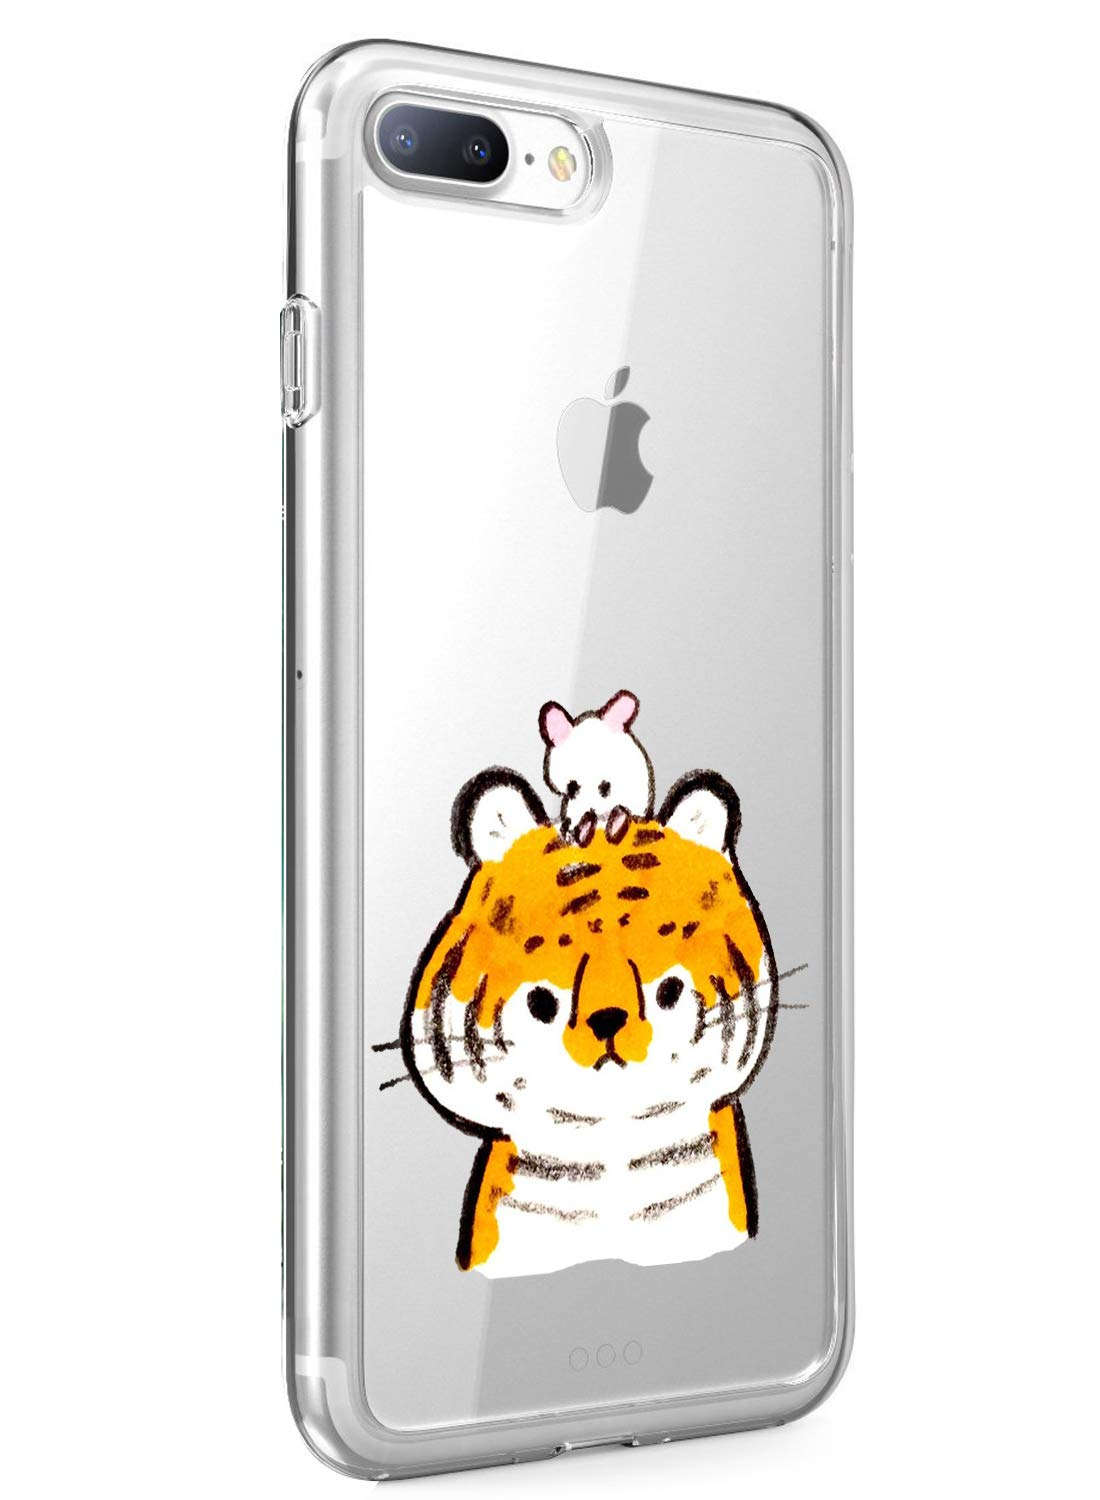 Oihxse Case Compatible with iPhone 5/5S/SE 4 inch Clear with Chic Design, Soft TPU Silicone Ultra Thin Slim Fit [Shockproof] [Anti-fingerprint] Crystal Transparent Case Cover Bumper Skin, Tiger Oihxse ✨【SLIM FIT】ONLY compatible with iPhone 5/5S/SE without bubbles, bubbles smudges, slippy and clinging, which provide a great hand feel & comfortable grip, easy put in and take off from pockets. ✨【CRYSTAL CLEAR】Cute and stylish pattern prints on the crystal transparent slim IPhone 5/5S/SE case, not only shows off the original beauty but adds more chic, fashion and elegant sense, makes you stand out from crowd and eye-catching. ✨【PREMIUM MATERIAL】Made from nontoxic and tasteless flexible TPU material, non fade and peel off. It can resist Iphone 5/5S/SE bumps, drops, scratches, impacts, shocks and fingerprint. 1